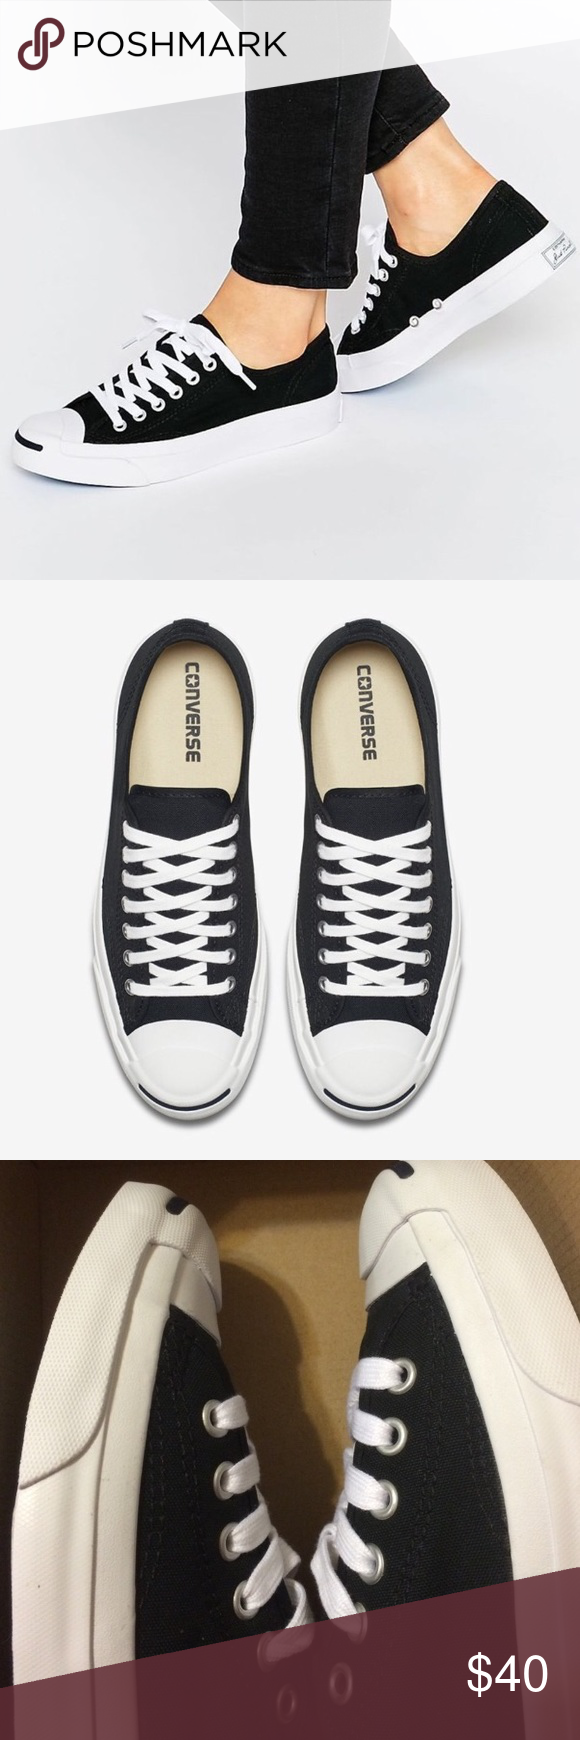 feadfe976a78 ... Converse jack Purcell shoes womens black PRODUCT DETAILS Plimsolls by  Converse Supplier code 1Q699 Canvas upper ...